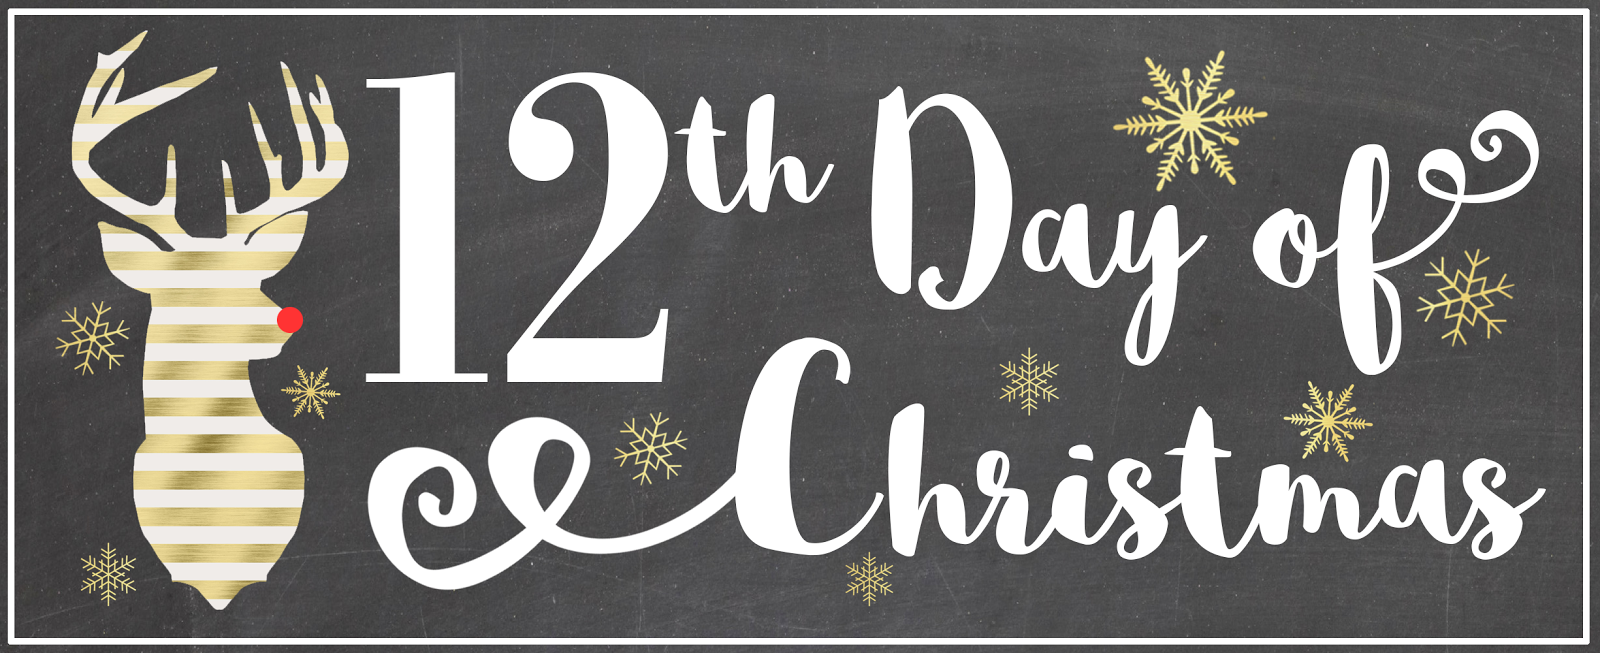 On The 12th Day Of Christmas.Aly Dosdall 12th Day Of Christmas Merry Christmas A